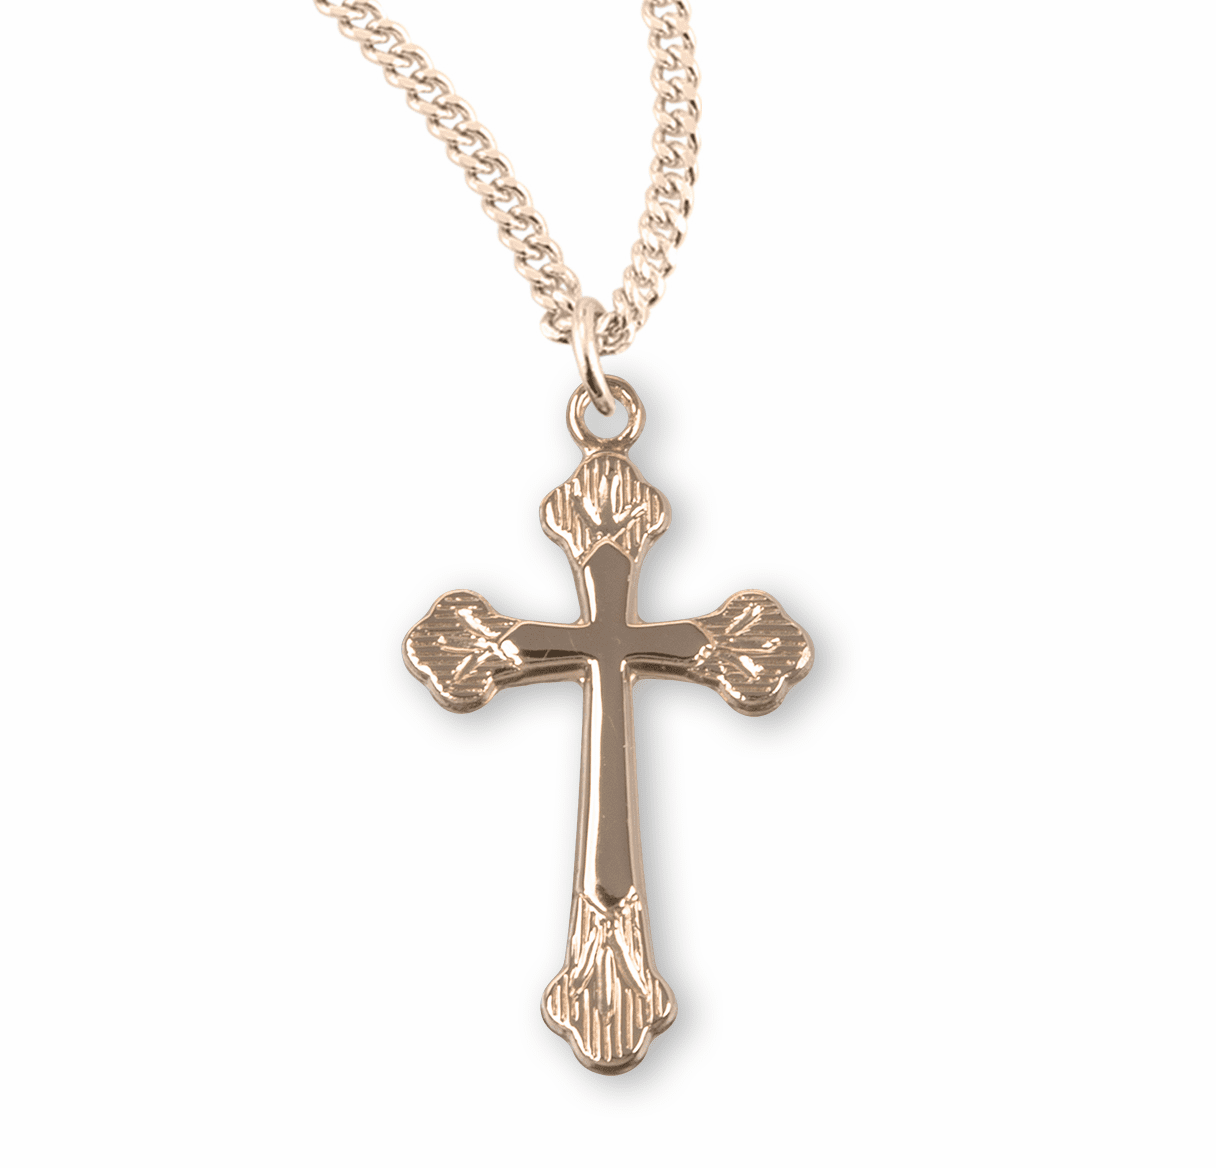 Gold Small Cross w/Fancy Tips Necklace by HMH Religious